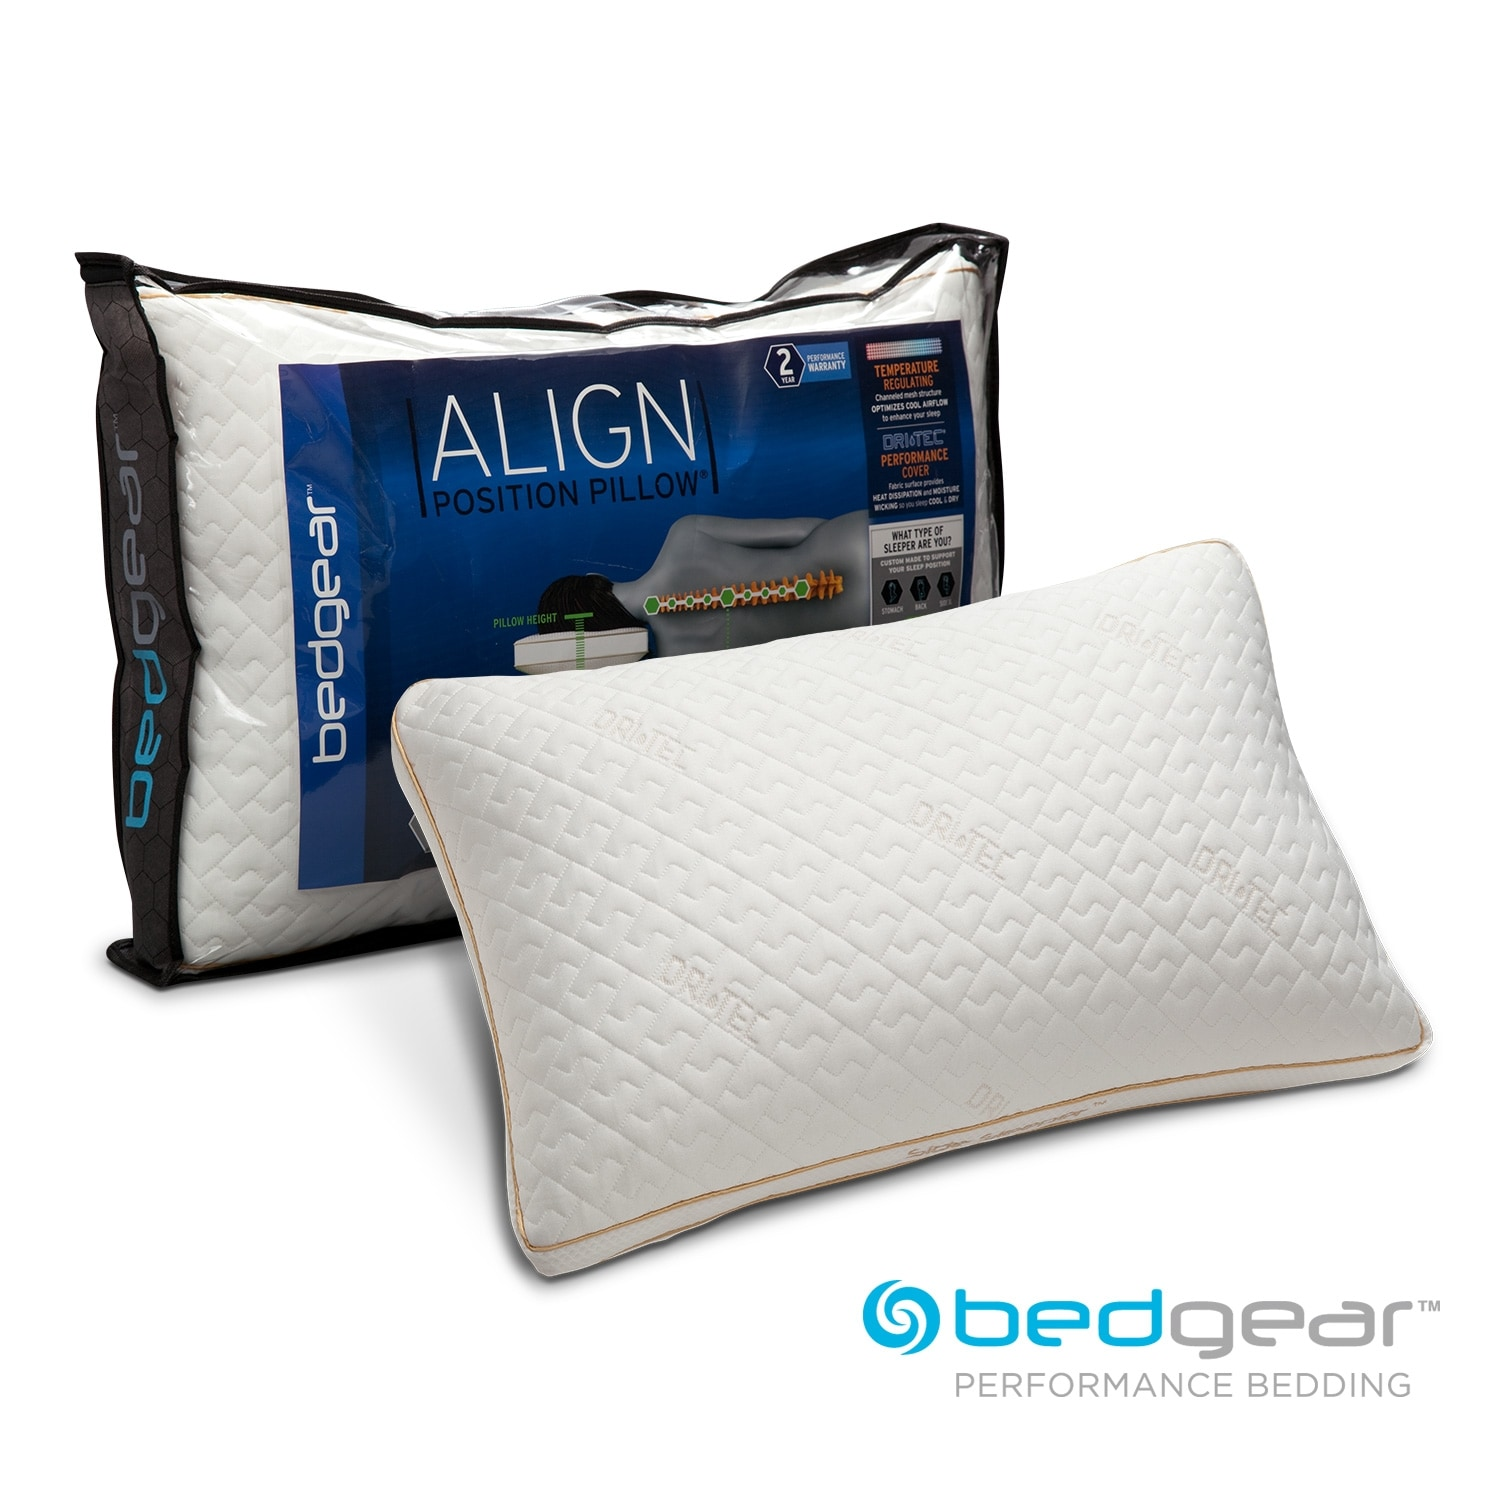 Mattresses and Bedding - Align II Jumbo/Queen Side Sleeper Pillow